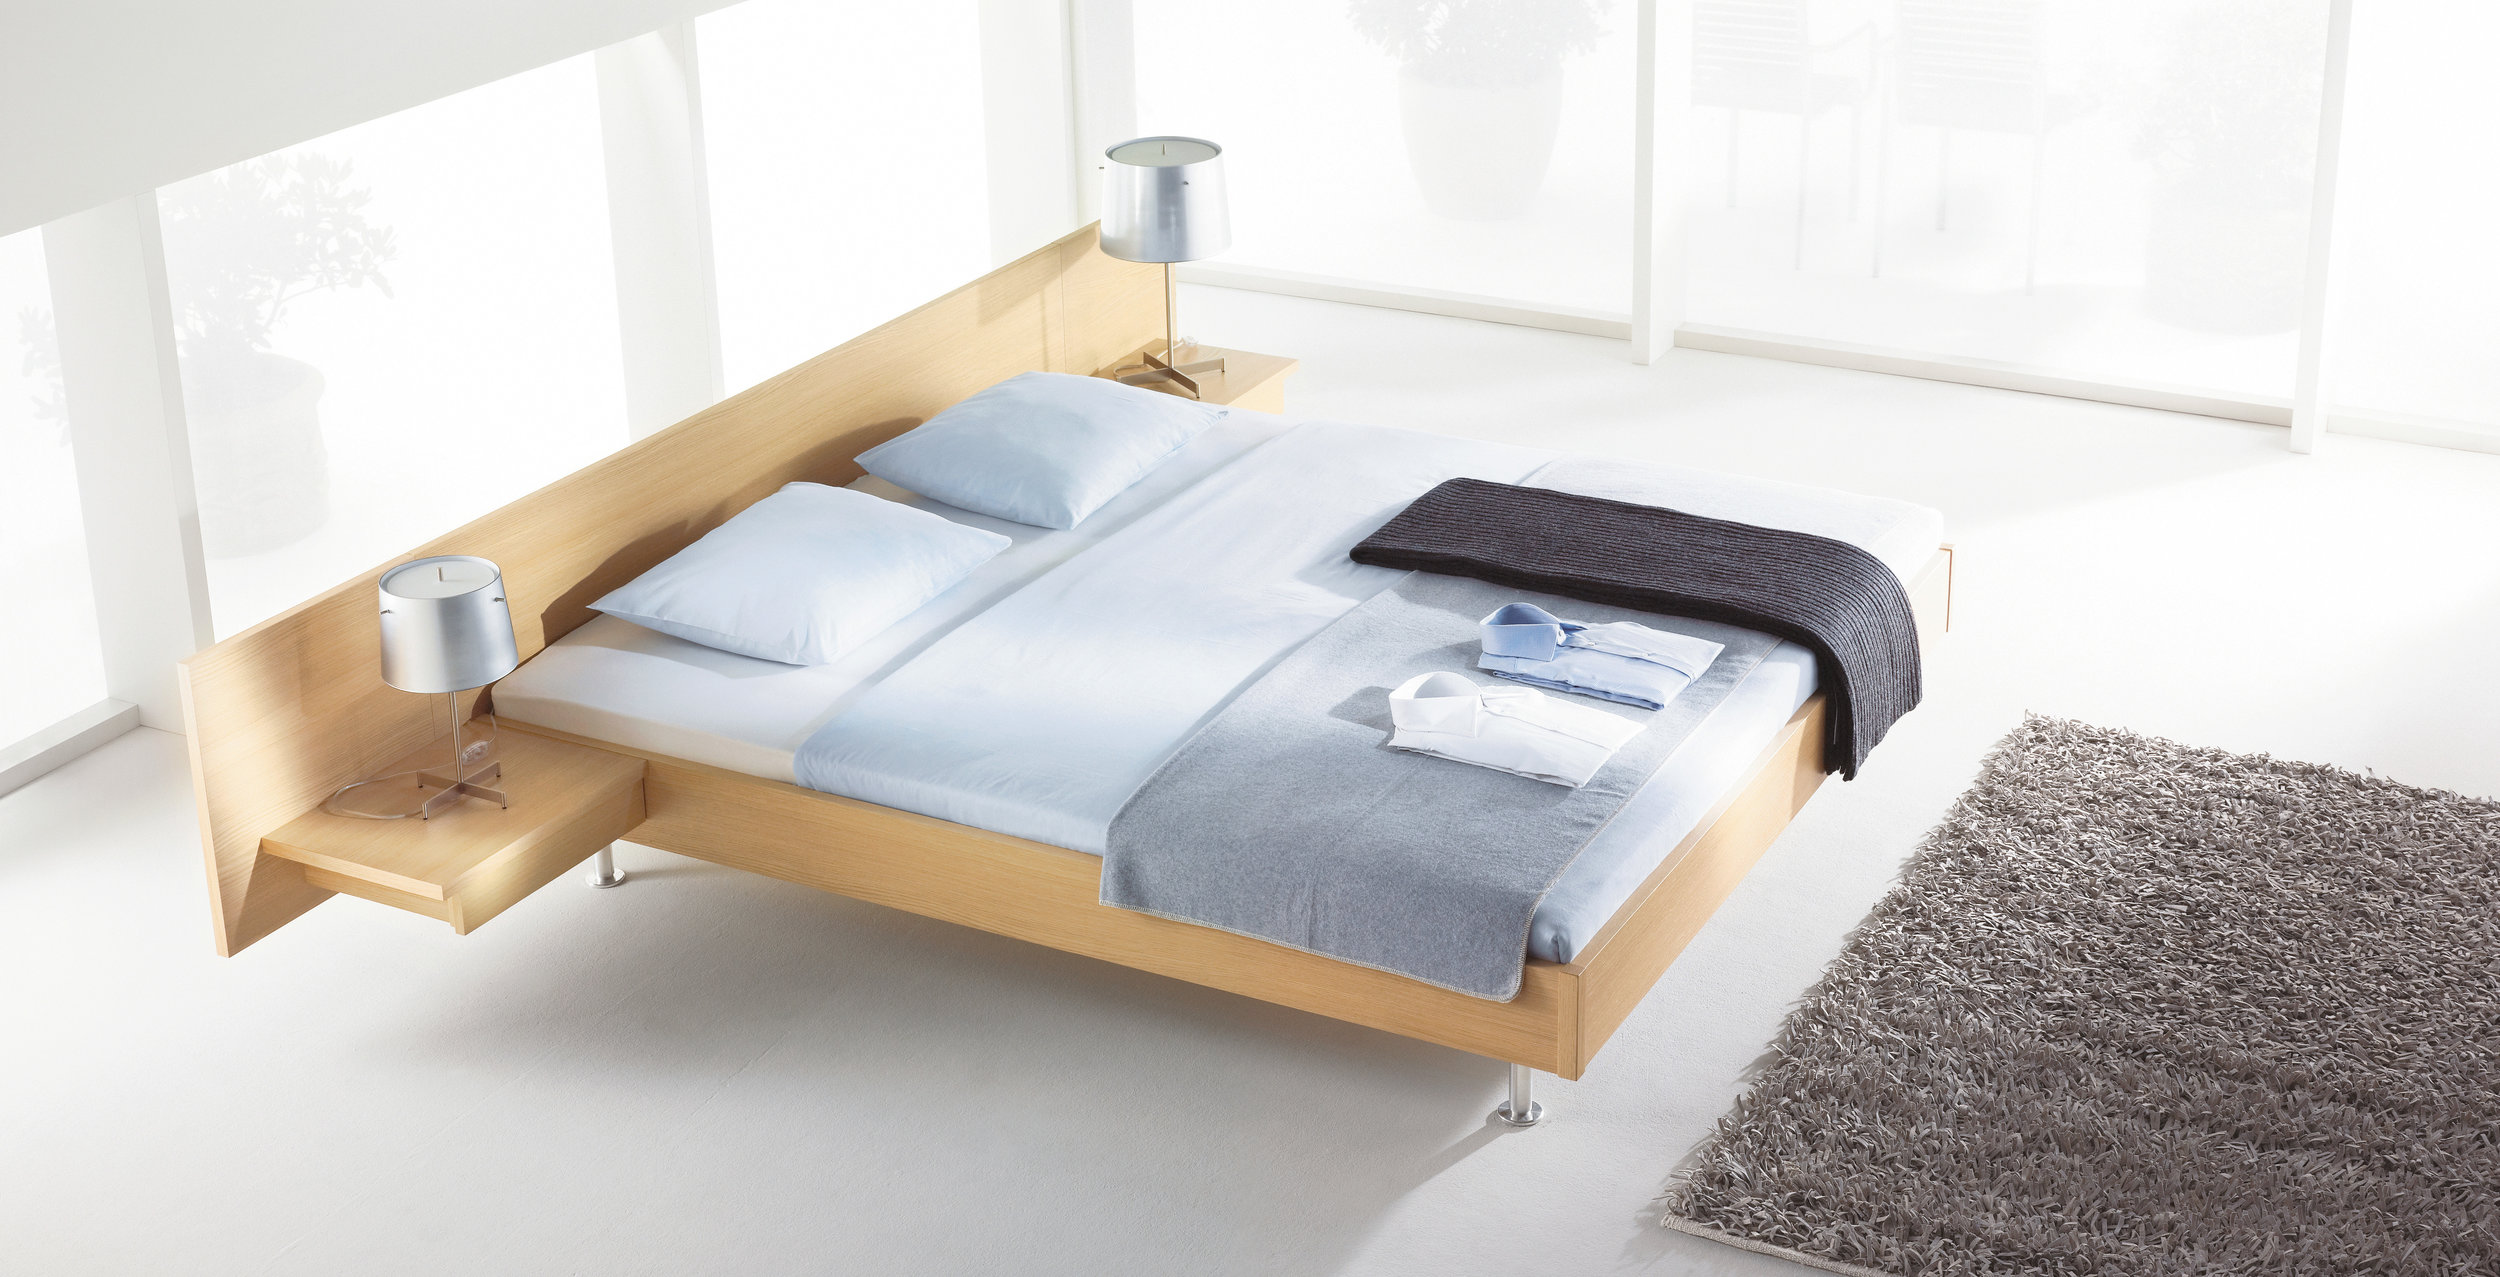 We Offer A Range Of Handsome And Sleek European Bed Frames In Wood Fabric All Sizes Custom Made For You Visit Our Los Angeles Showroom Or